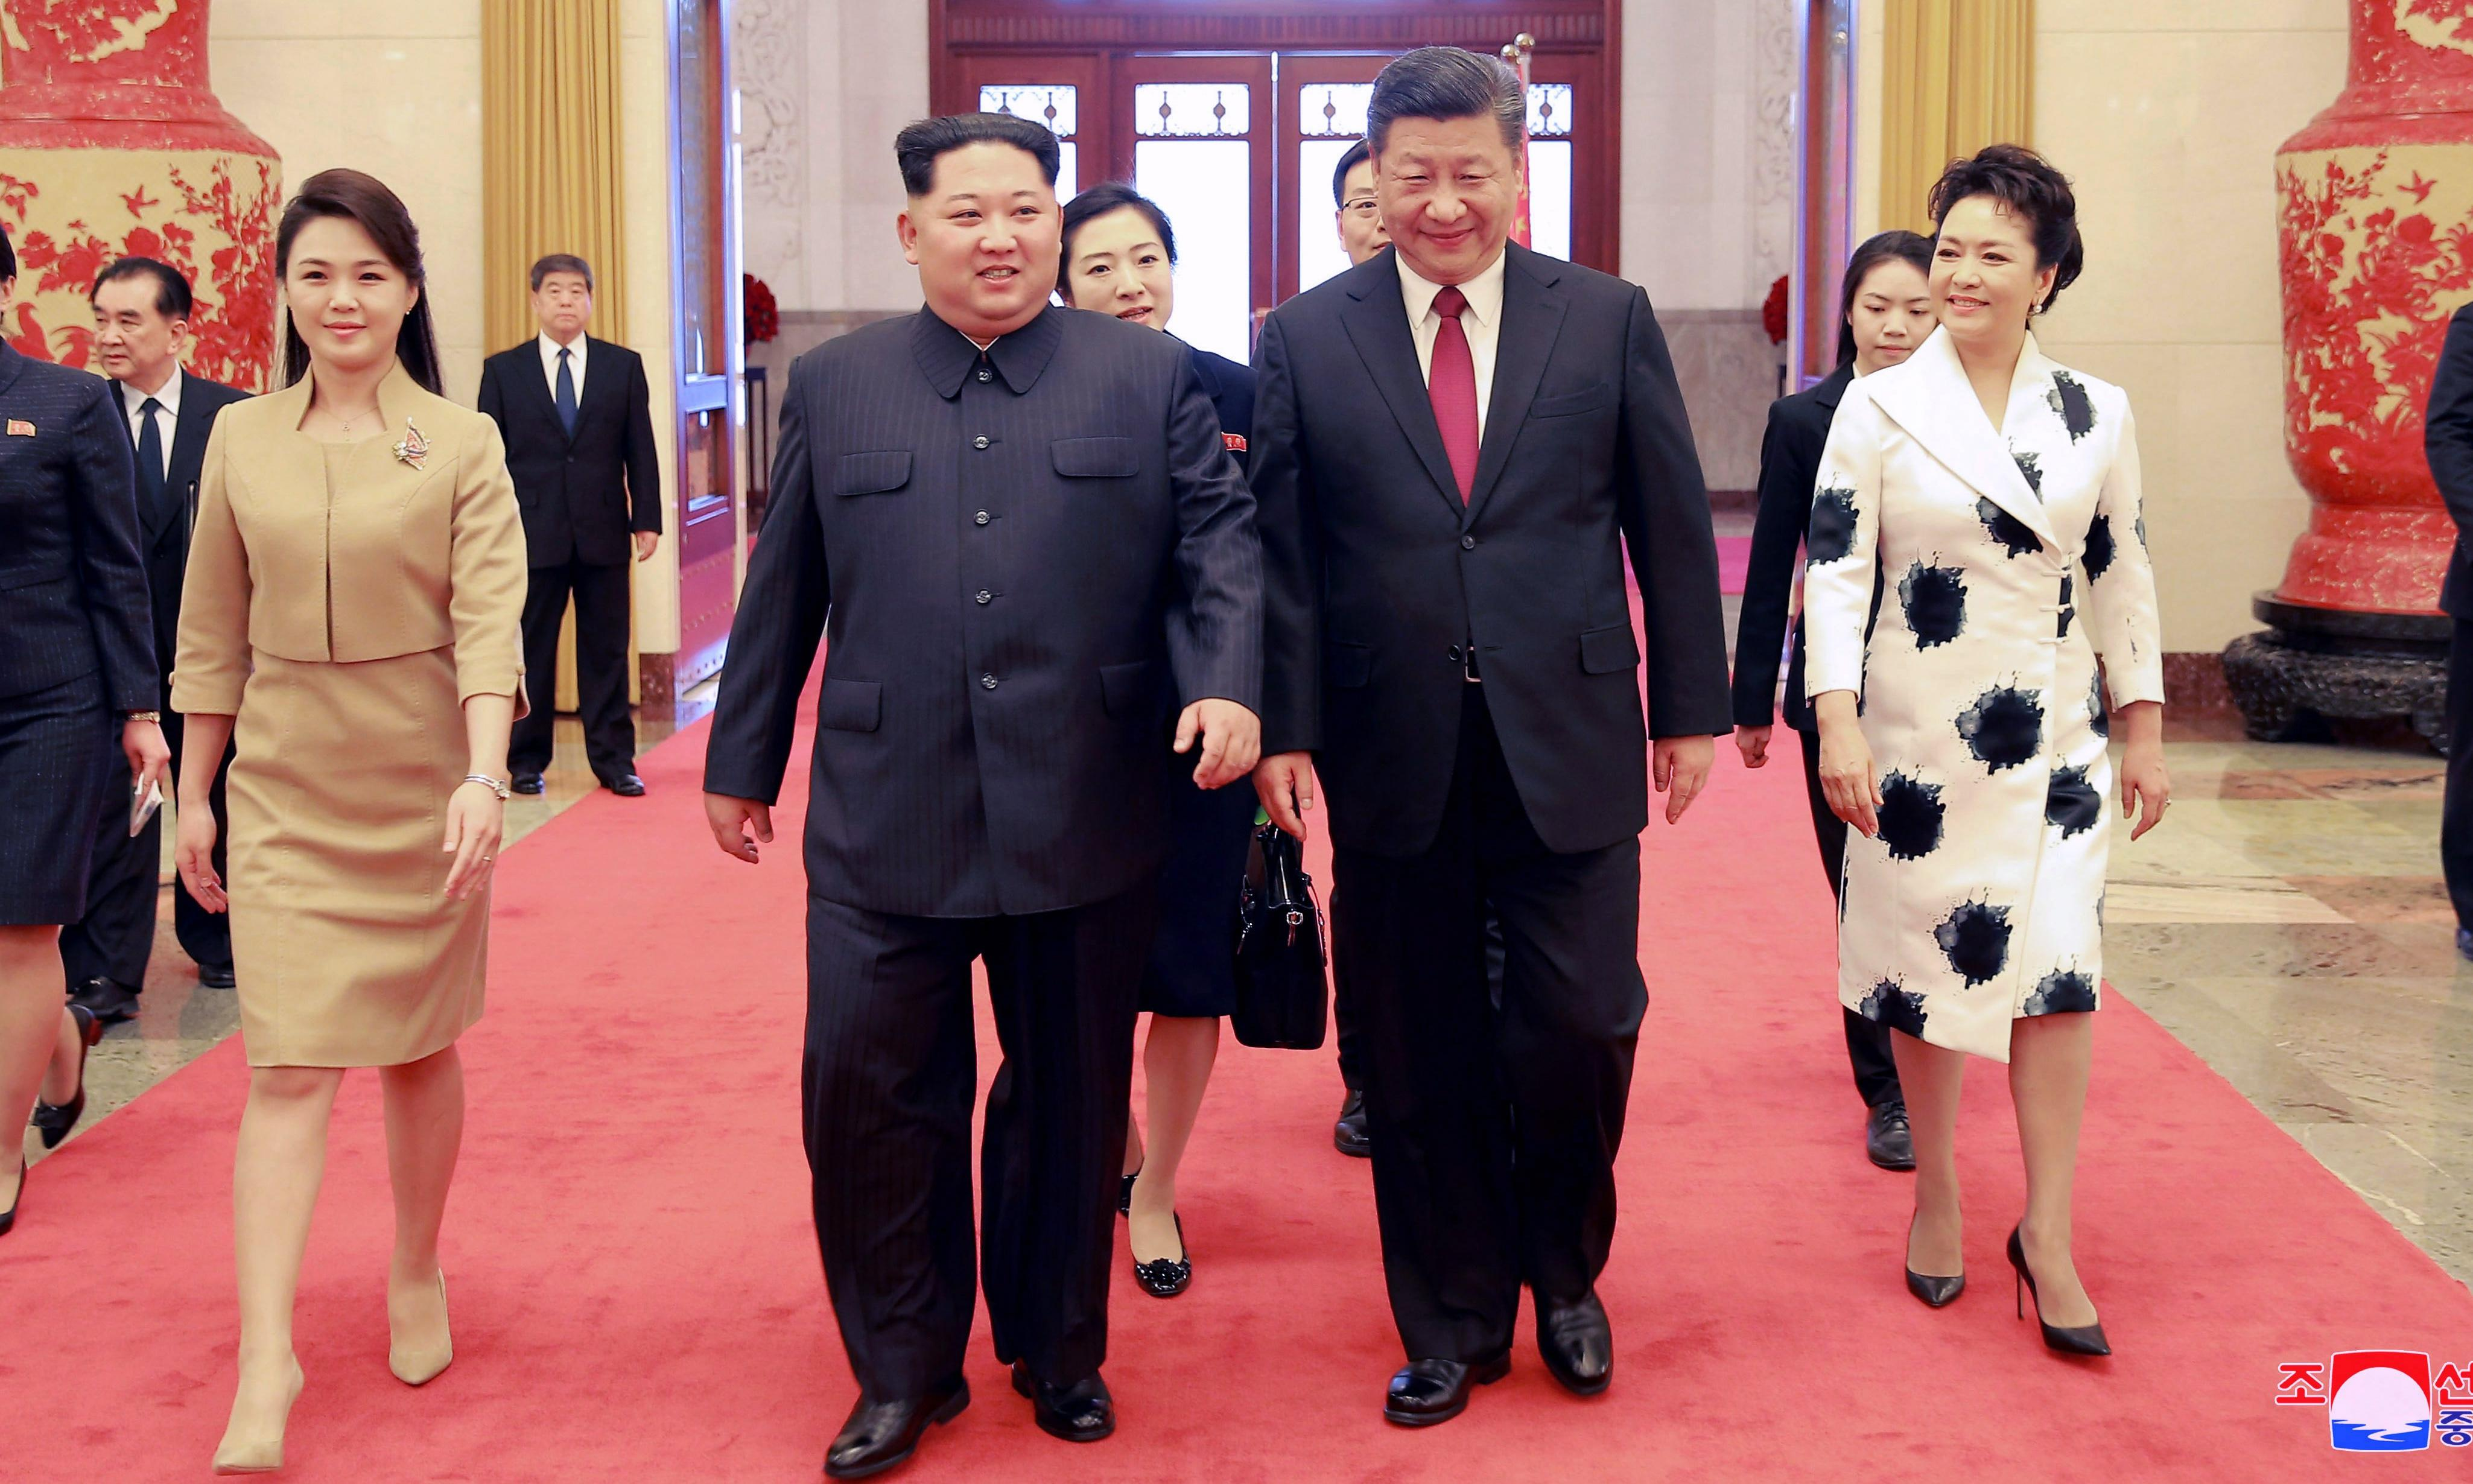 Xi Jinping to meet Kim Jong-un in first state visit to North Korea